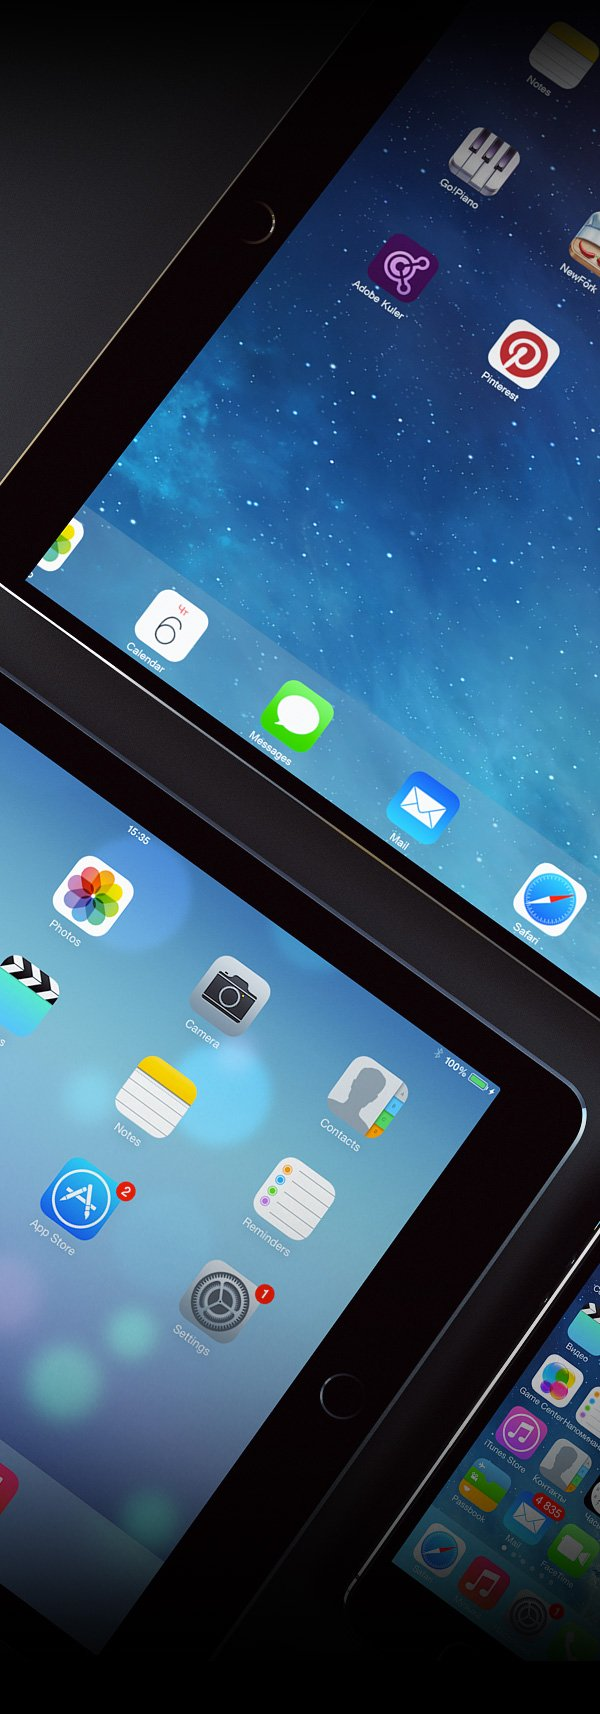 iPad Pro: The Child of MacBook Pro and iPad Air